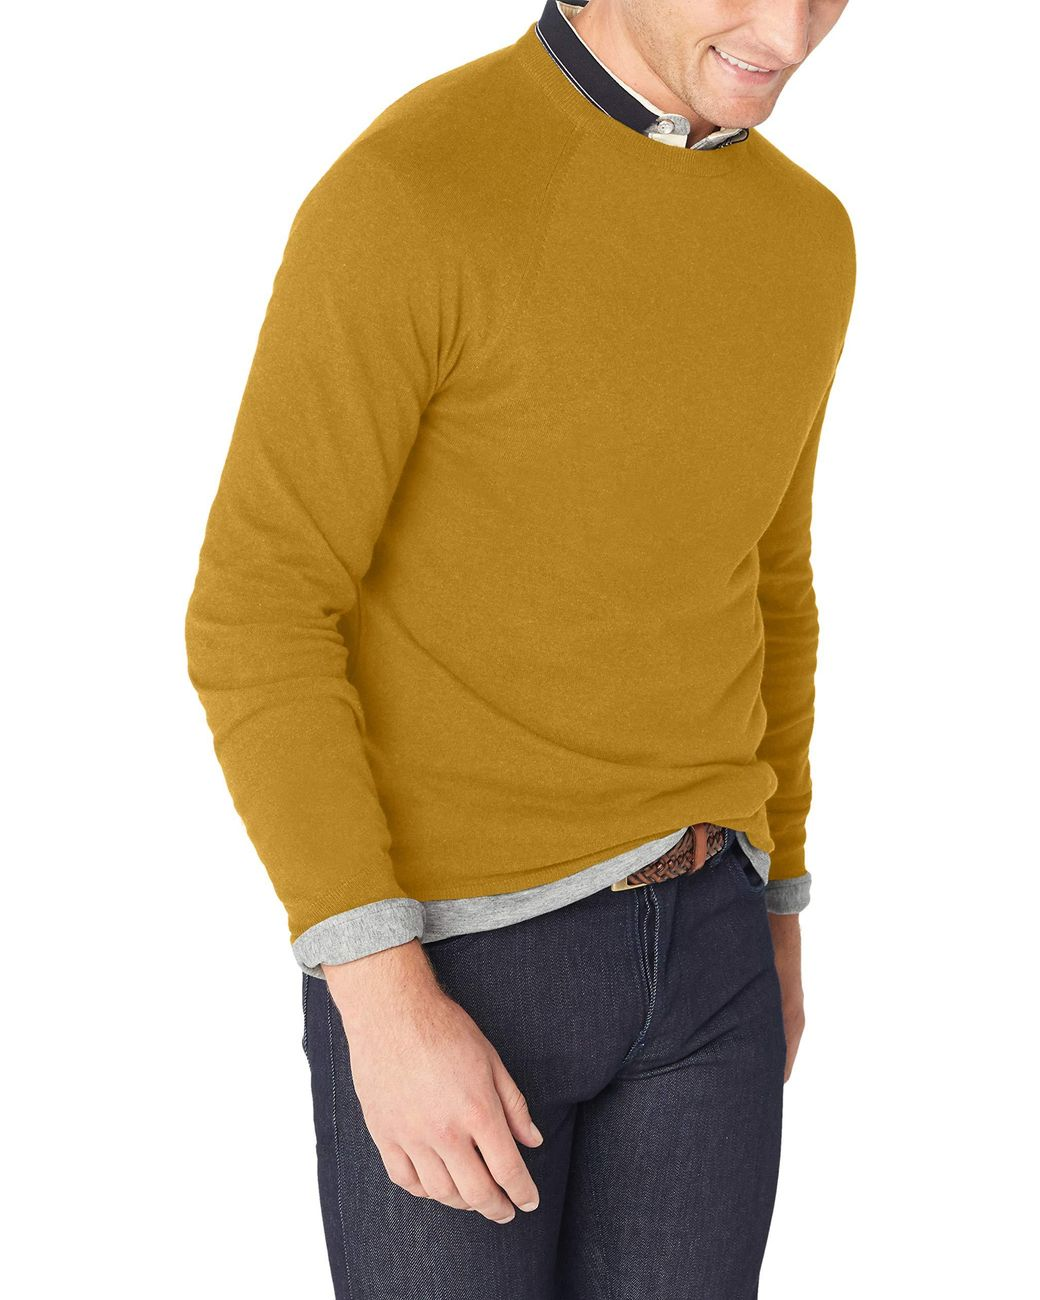 Long Sleeve Stretch Cotton Sweater